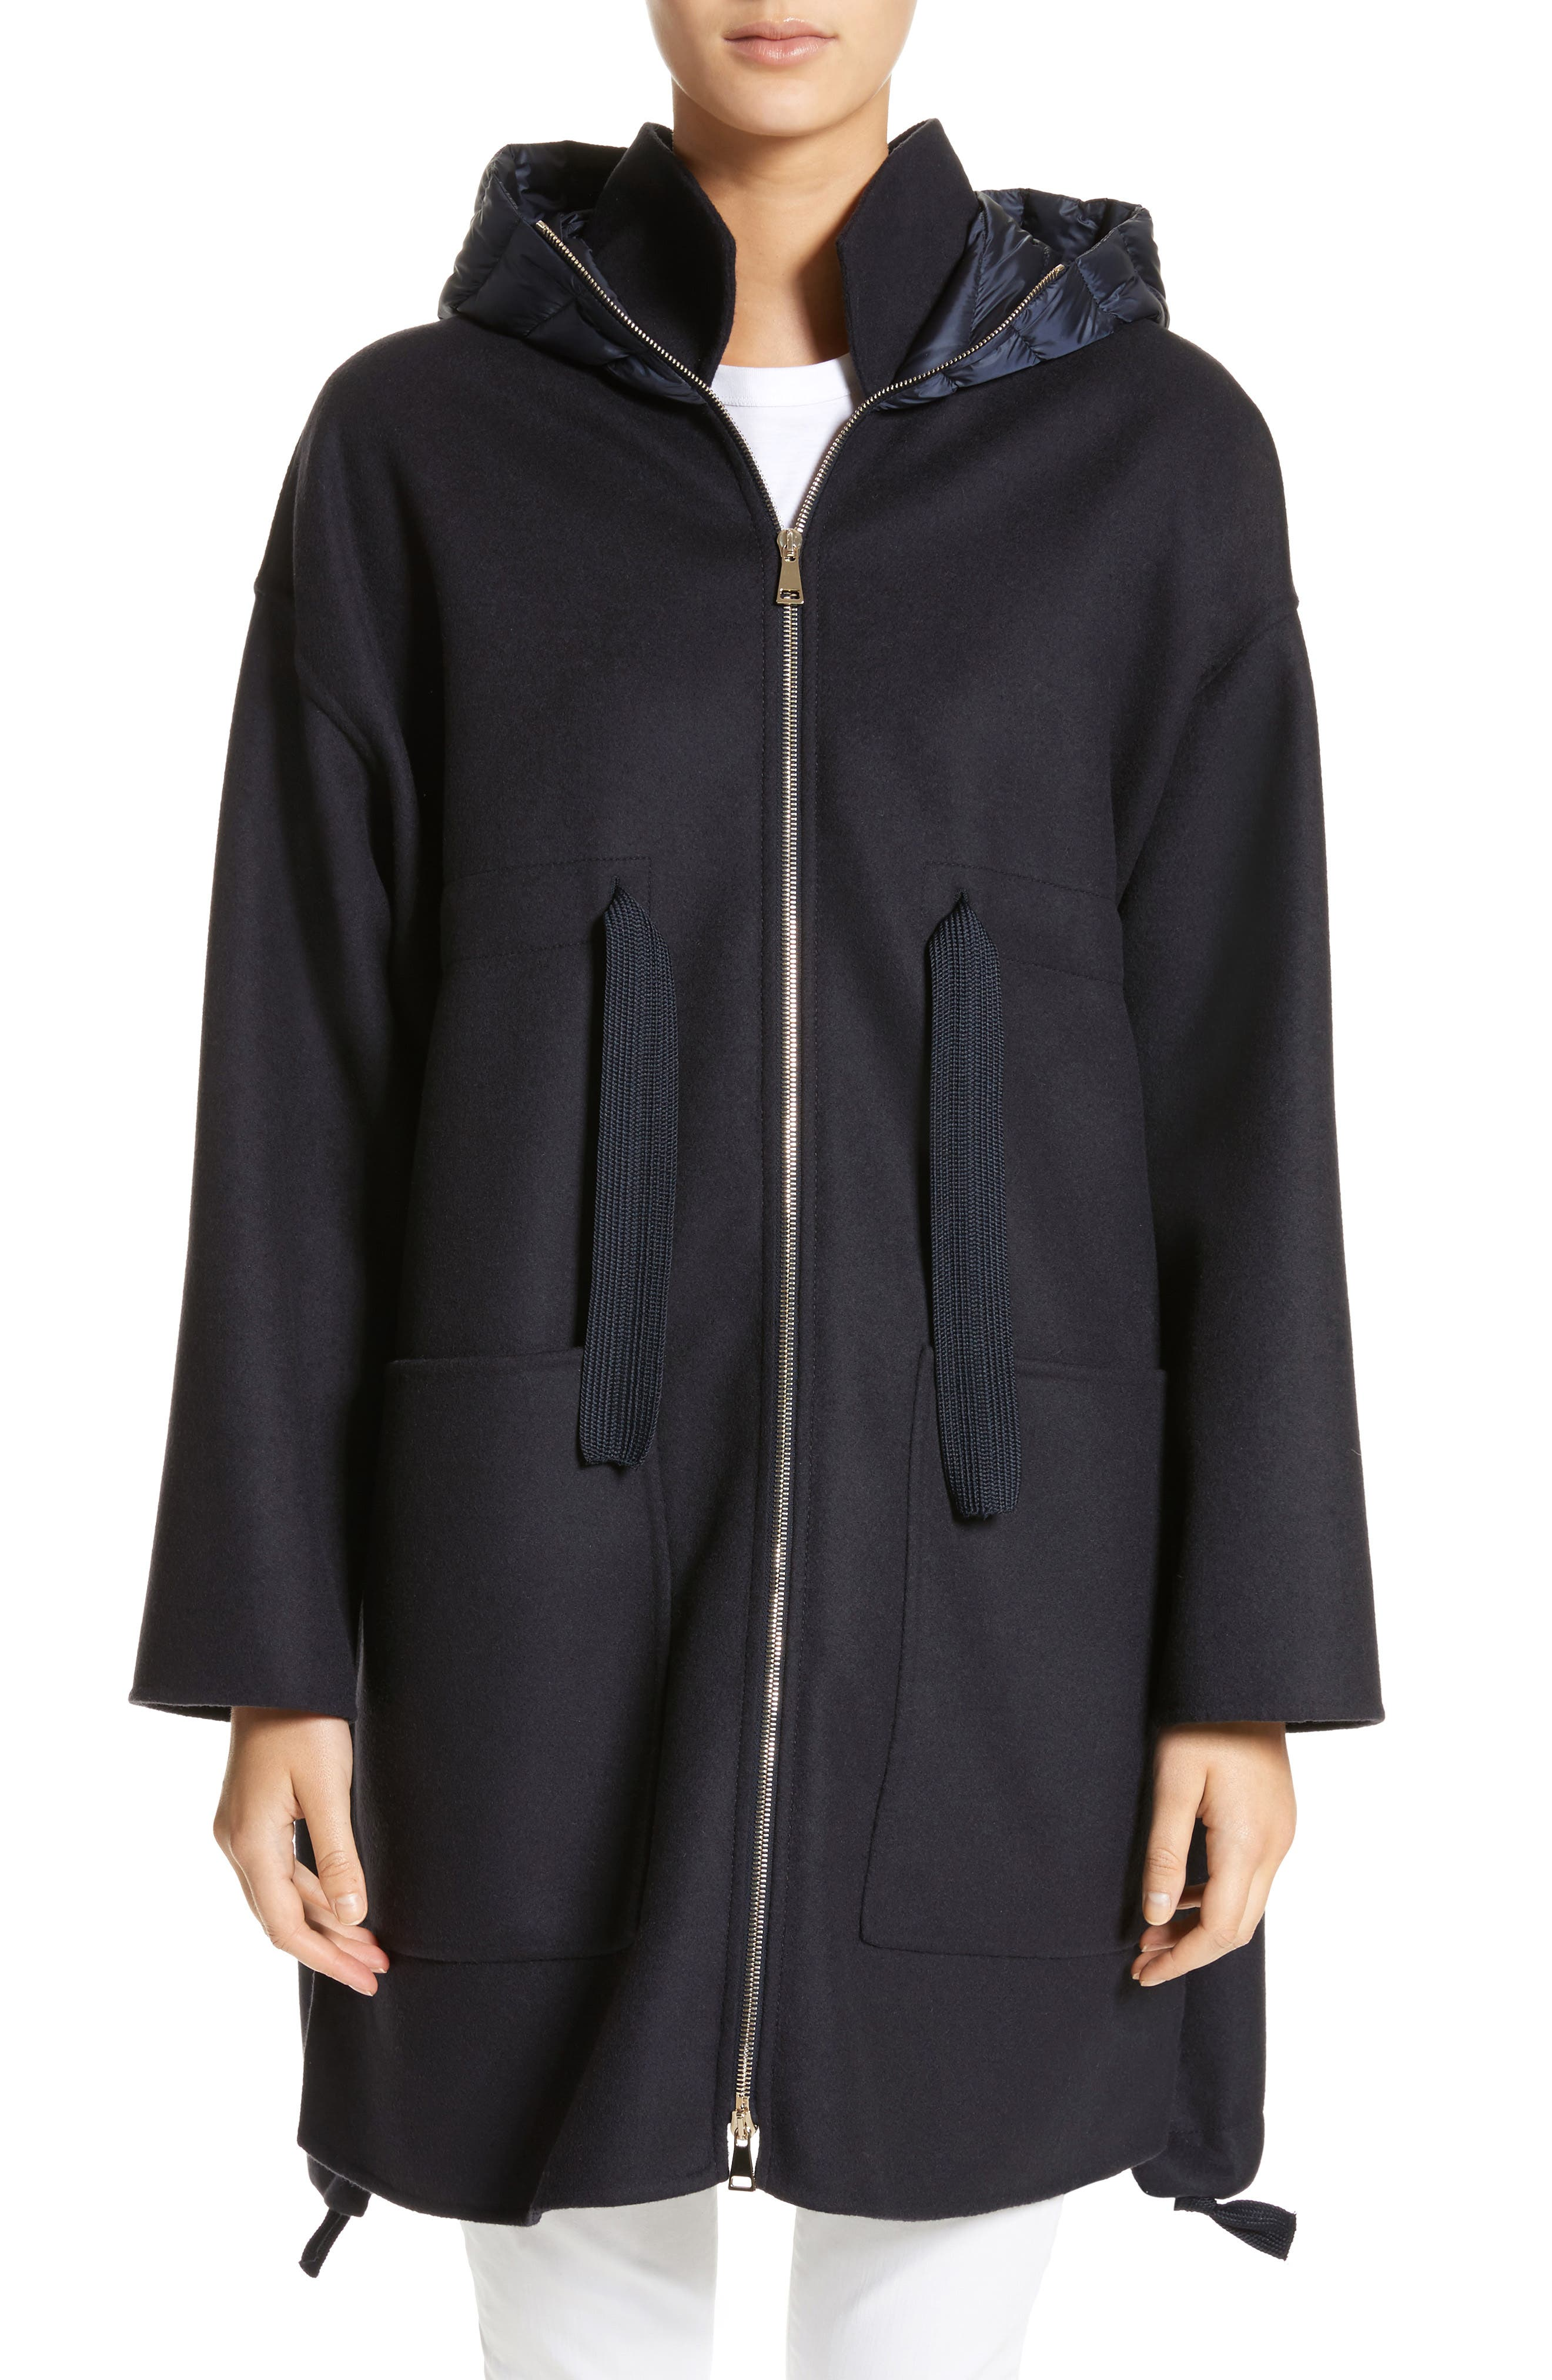 Grenat Wool & Cashmere Hooded Jacket,                             Main thumbnail 1, color,                             419